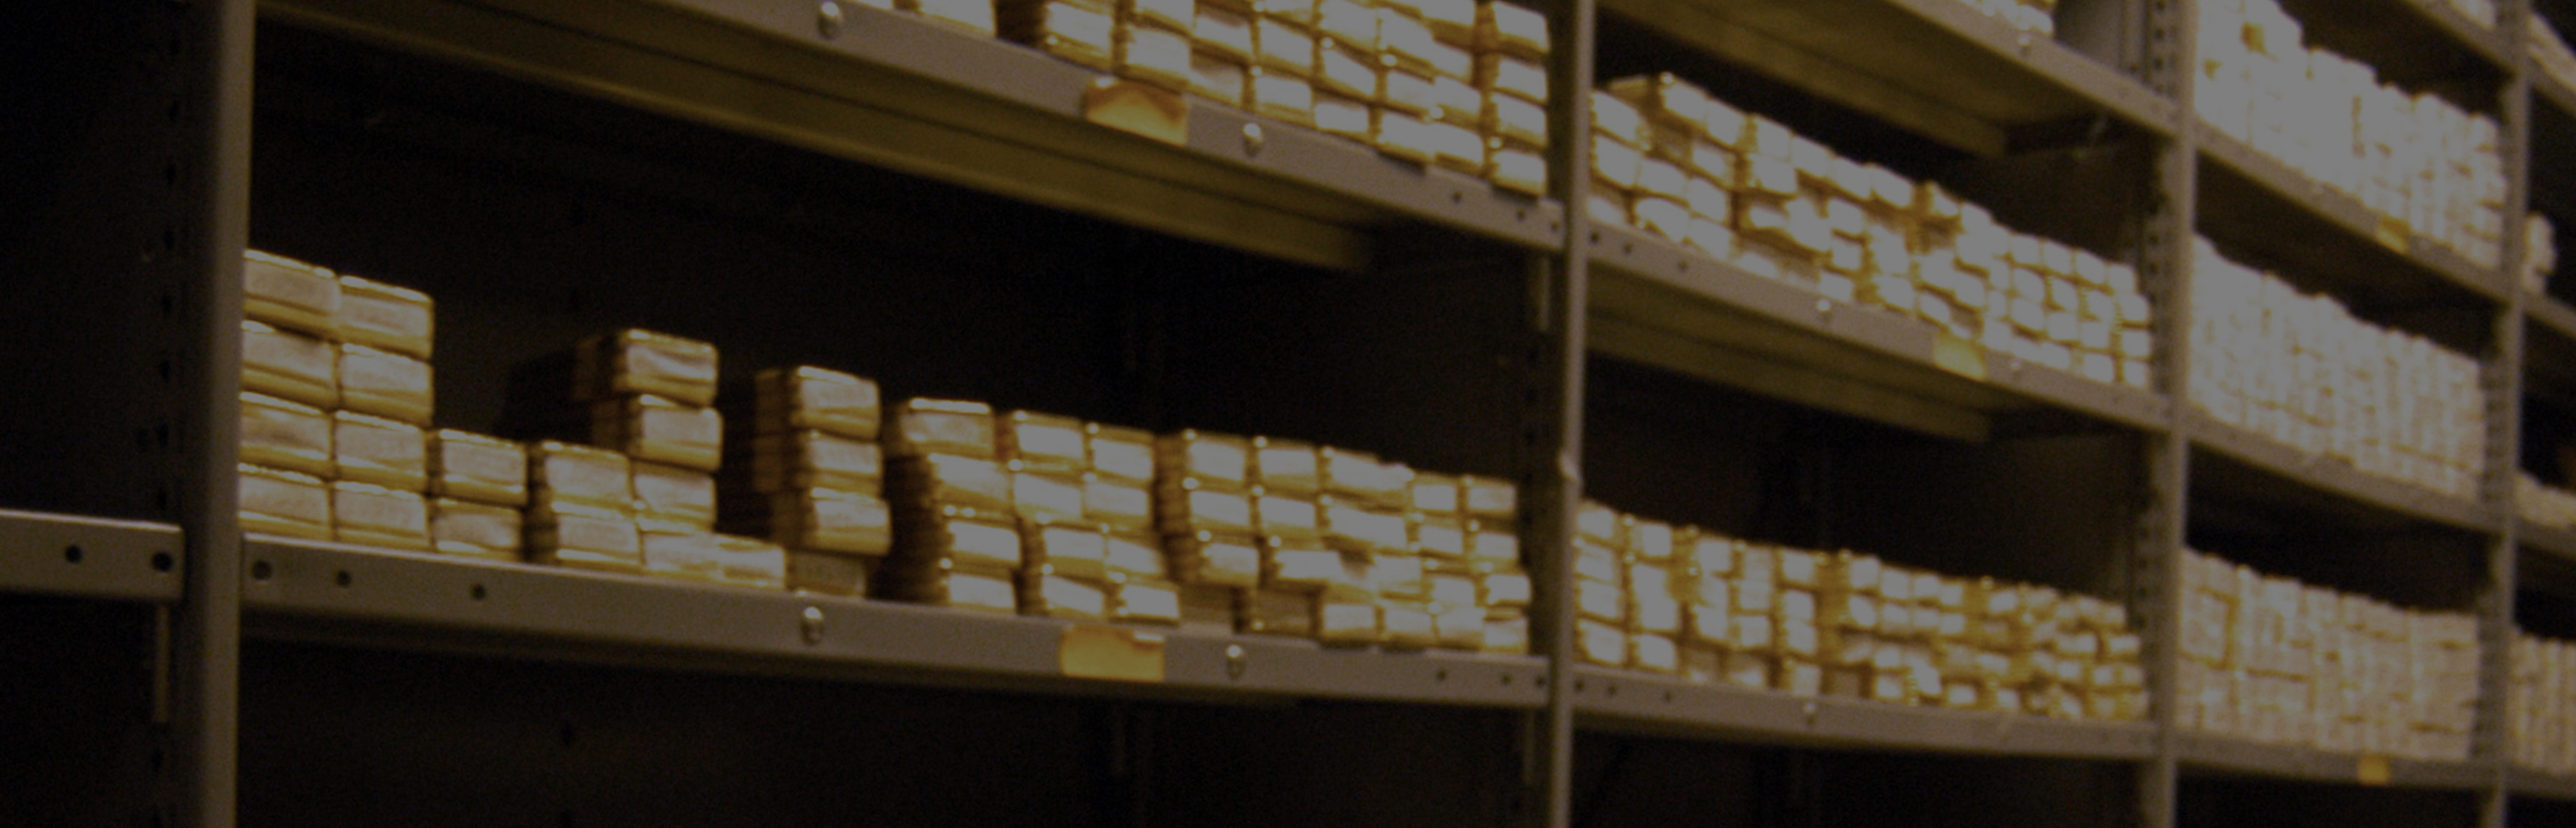 International vaults & FTZ facilities for the secure storage of gold, silver, platinu, palladium and other valuable assets